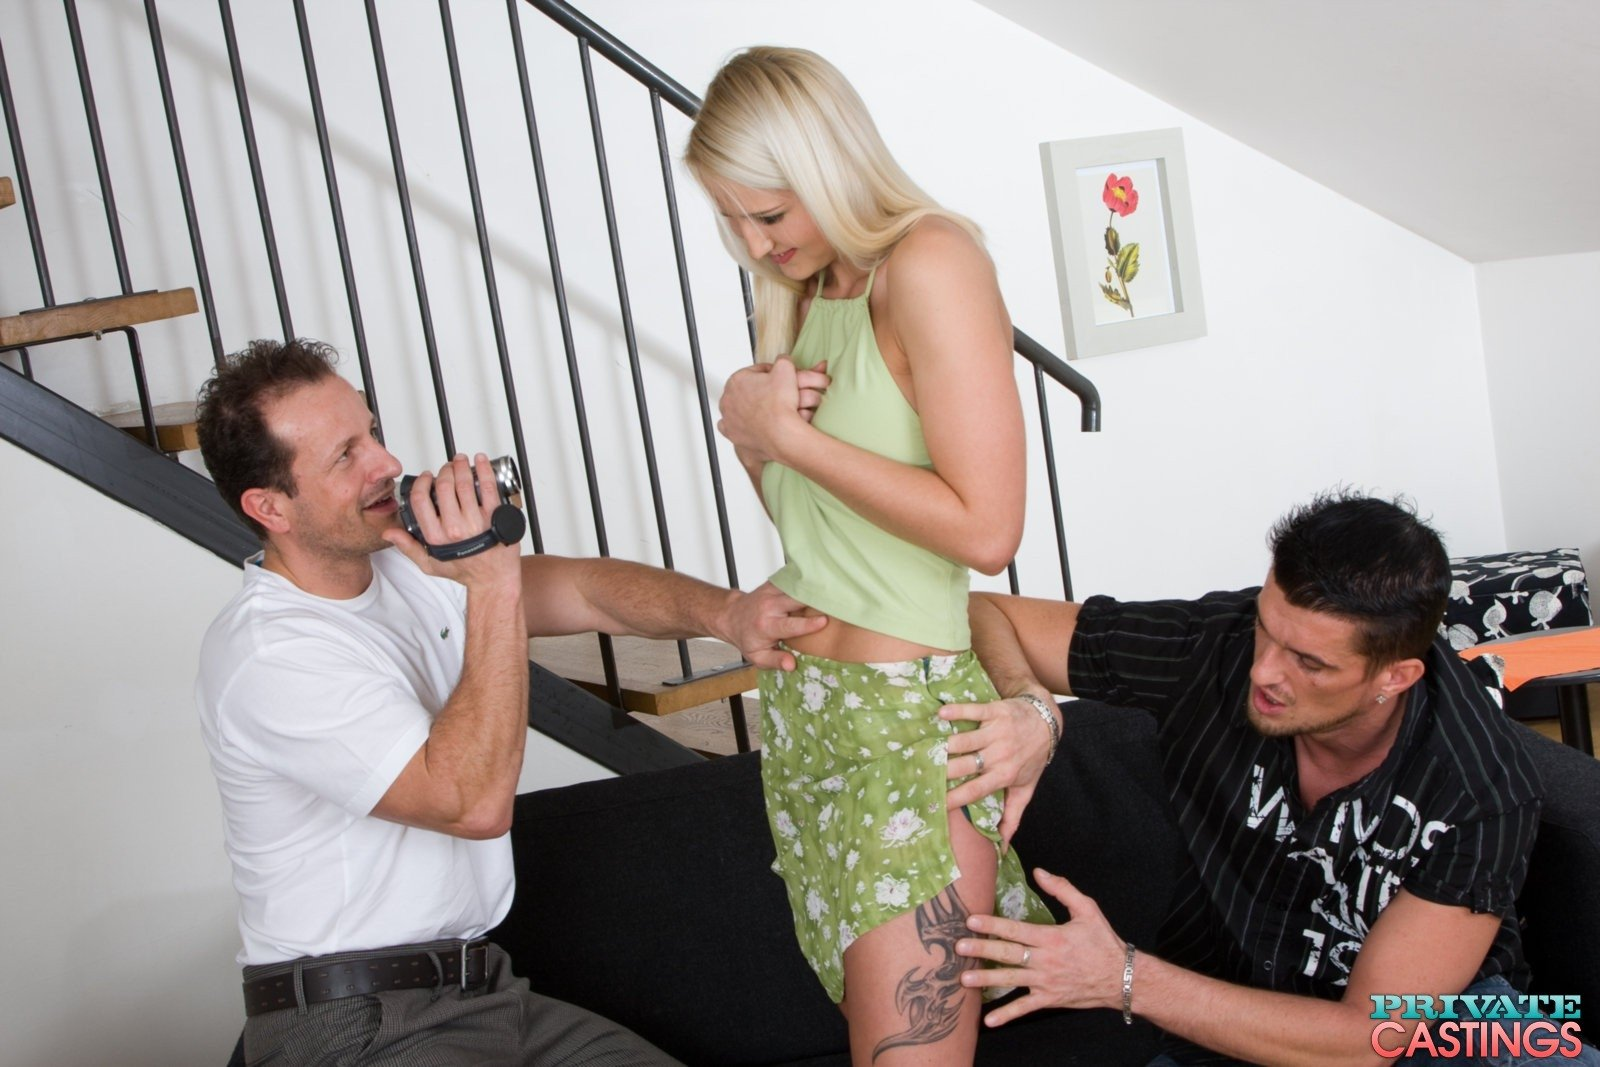 Sister imoregnate Teen in home makeover Old boy inserts cock in young hole